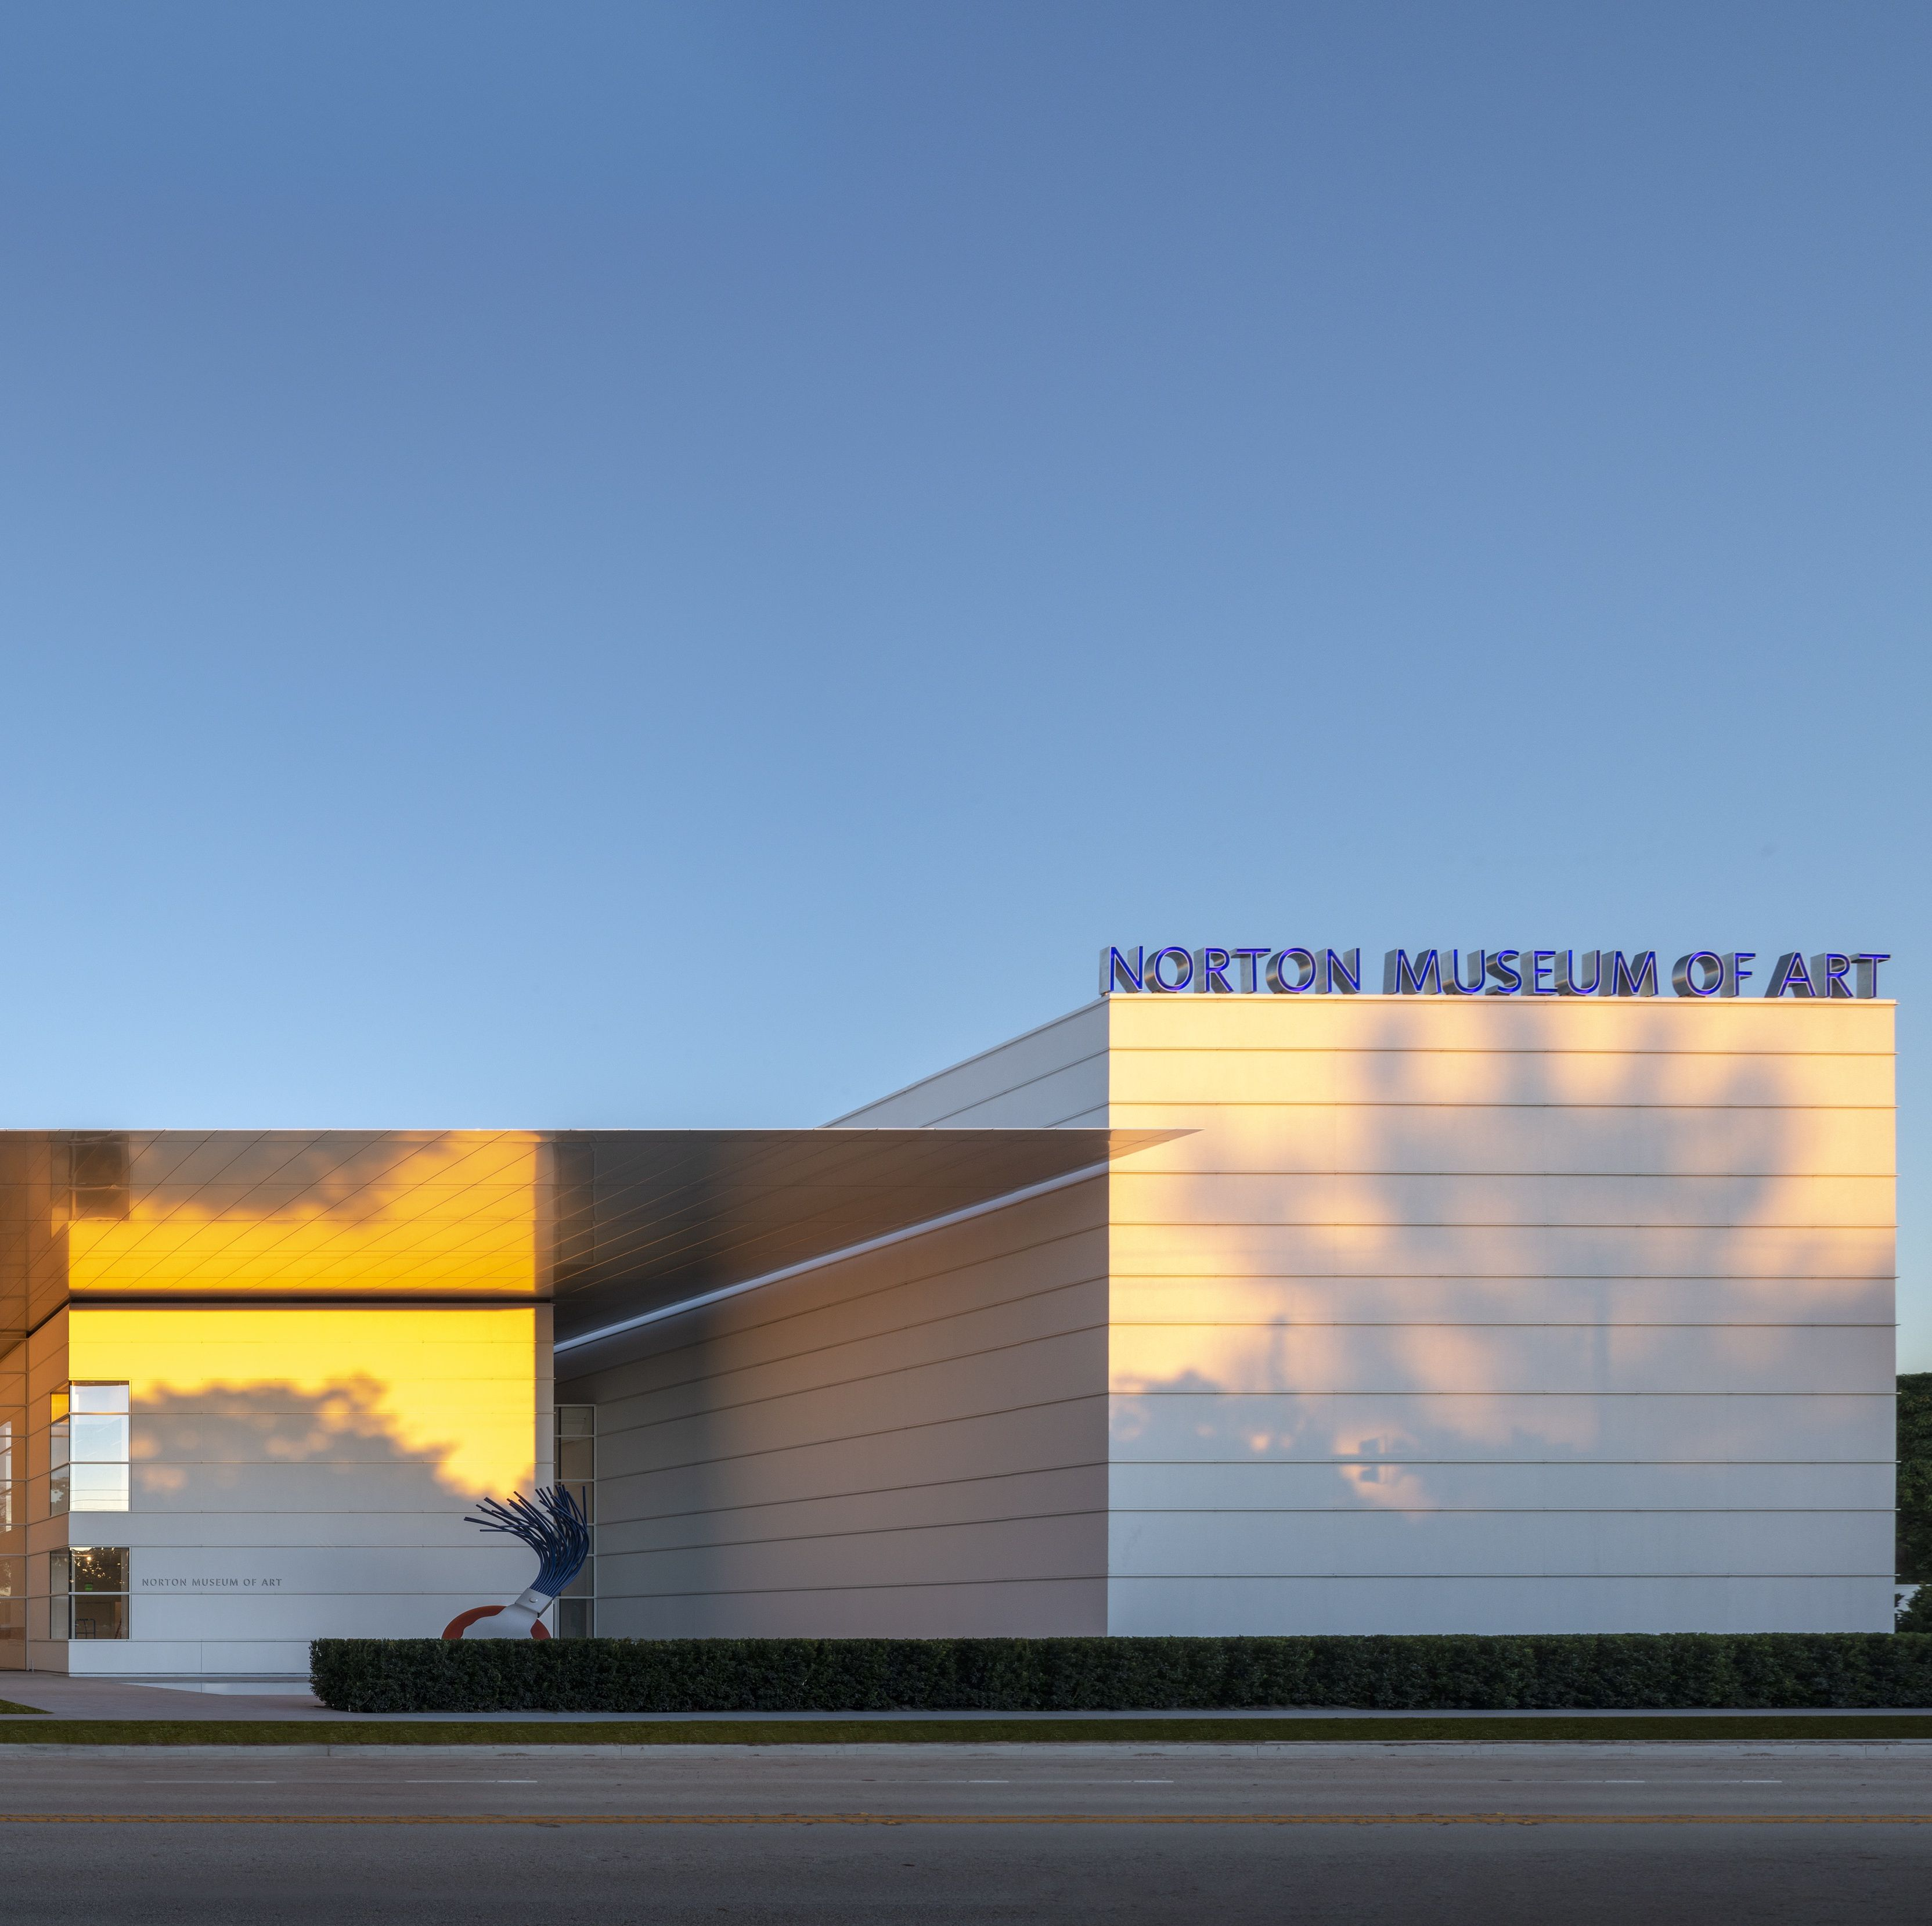 Palm Beach's Norton Museum of Art Gets a Major New Expansion From Foster + Partners